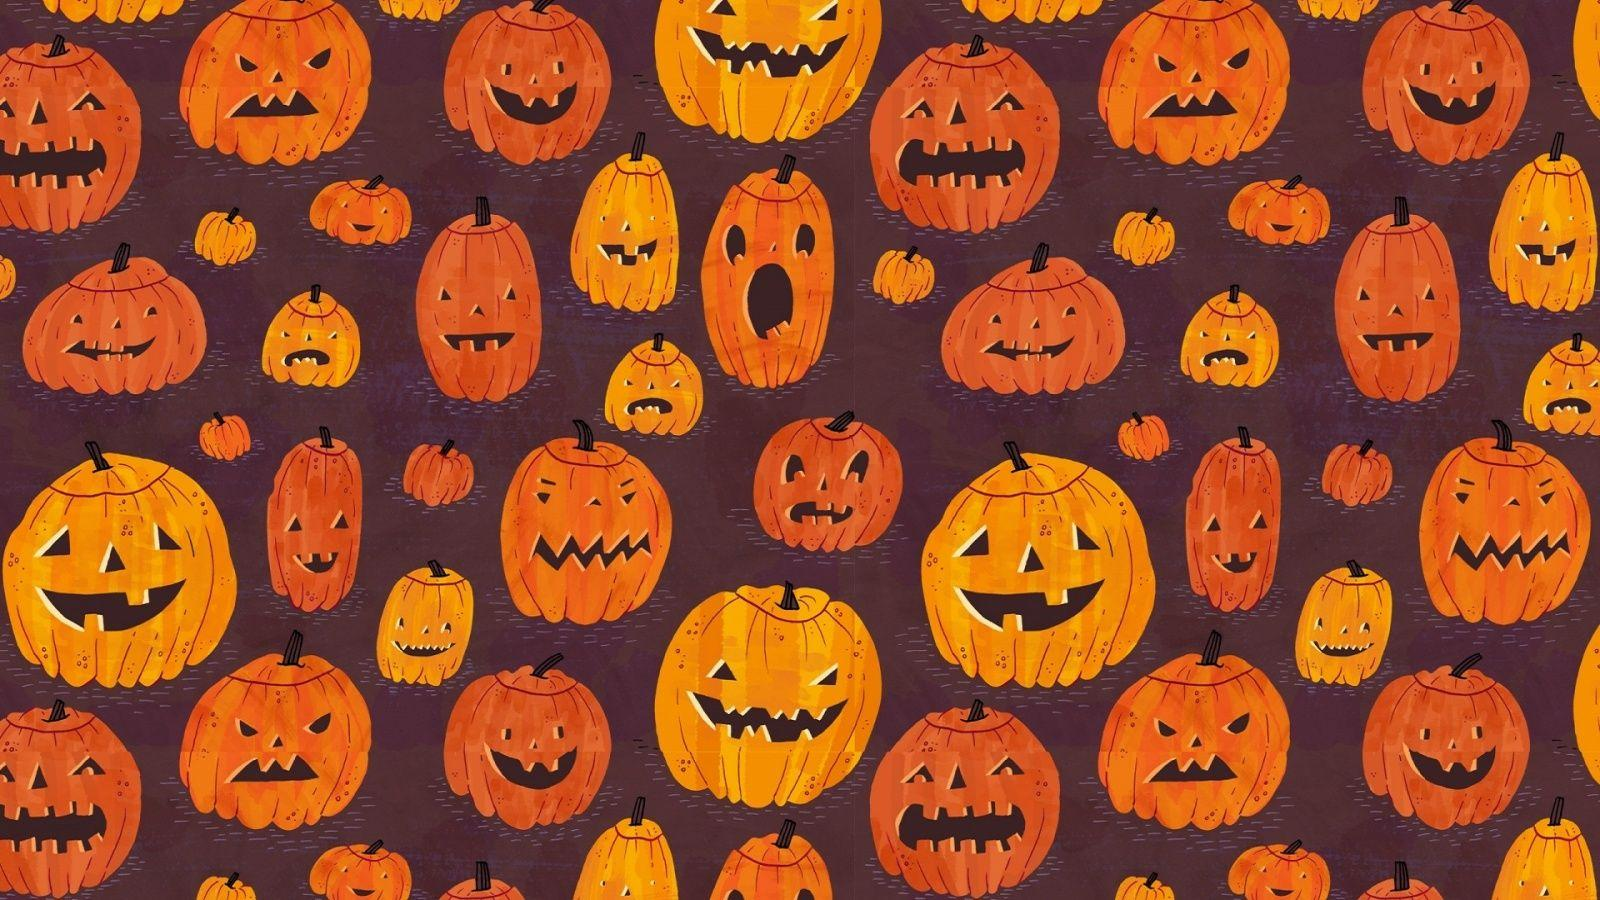 Halloween Aesthetic Pc Wallpapers Top Free Halloween Aesthetic Pc Backgrounds Wallpaperaccess